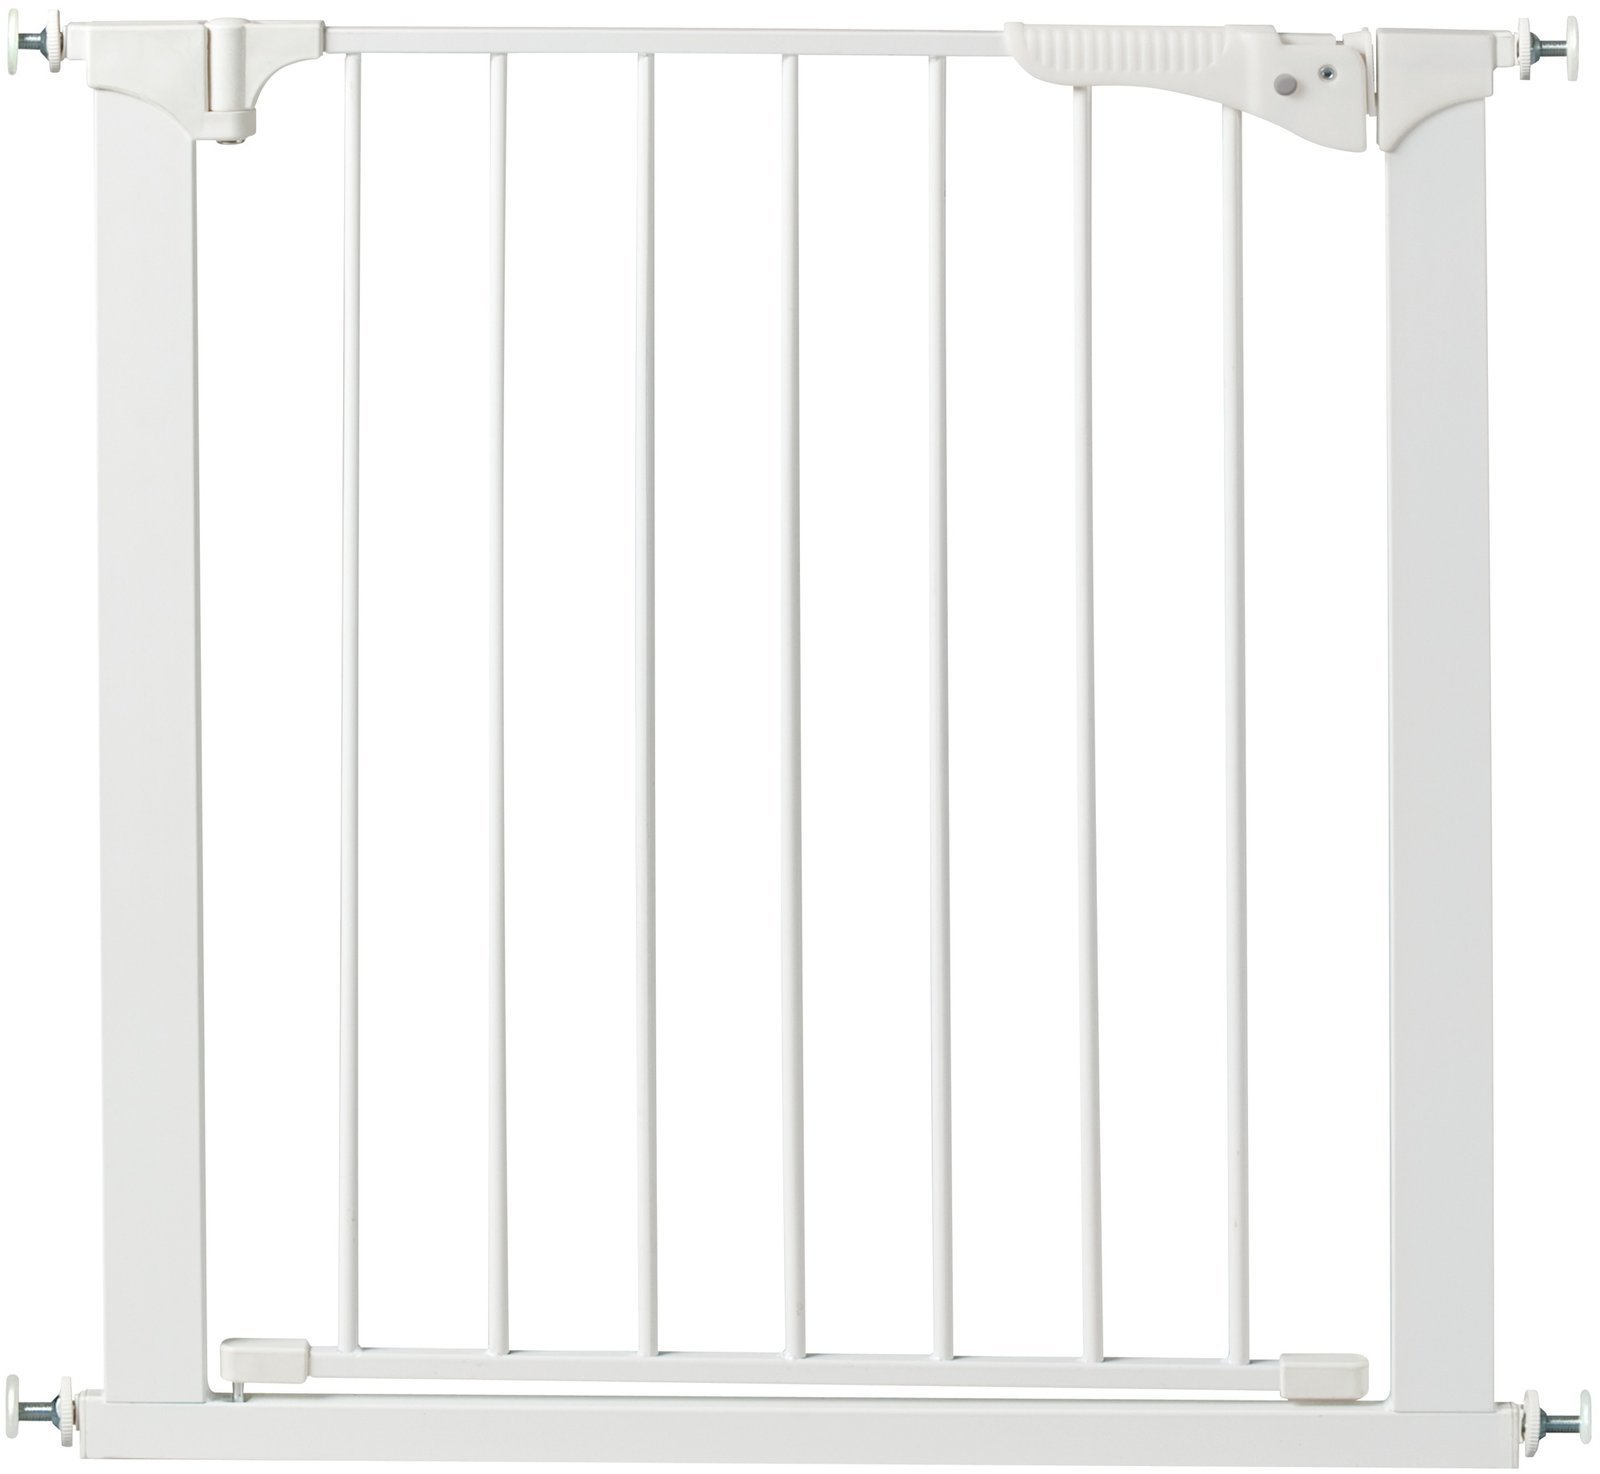 KidCo G15 White Center Gateway with Walk Through Pressure Gate KidCo Easy and one hand operation No damage to walls or doorways Installs quickly and no tools needed 1